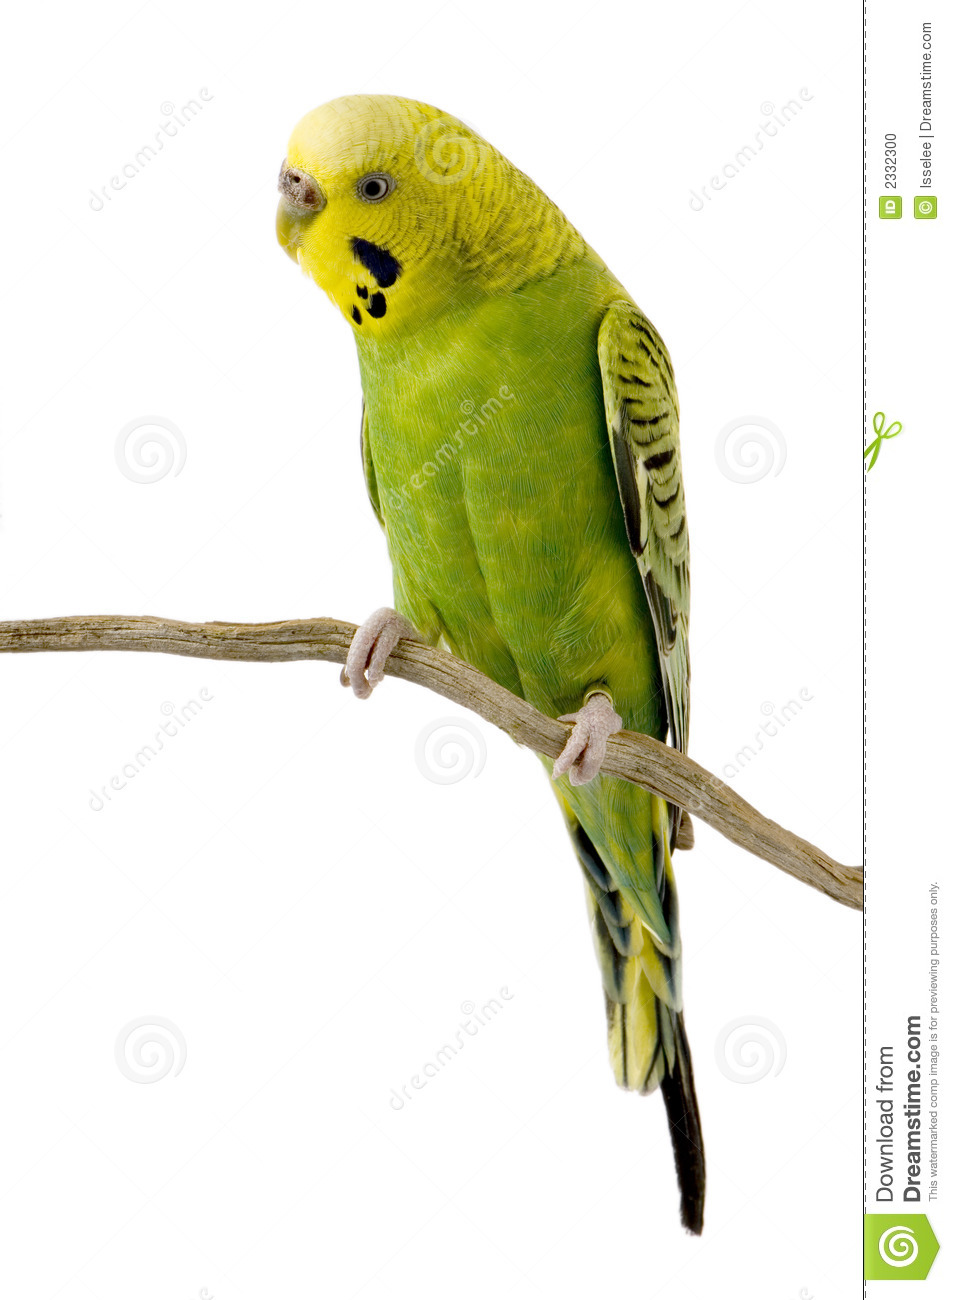 Yellow And Green Living Room Decor: Yellow And Green Budgie Stock Photo. Image Of Animal